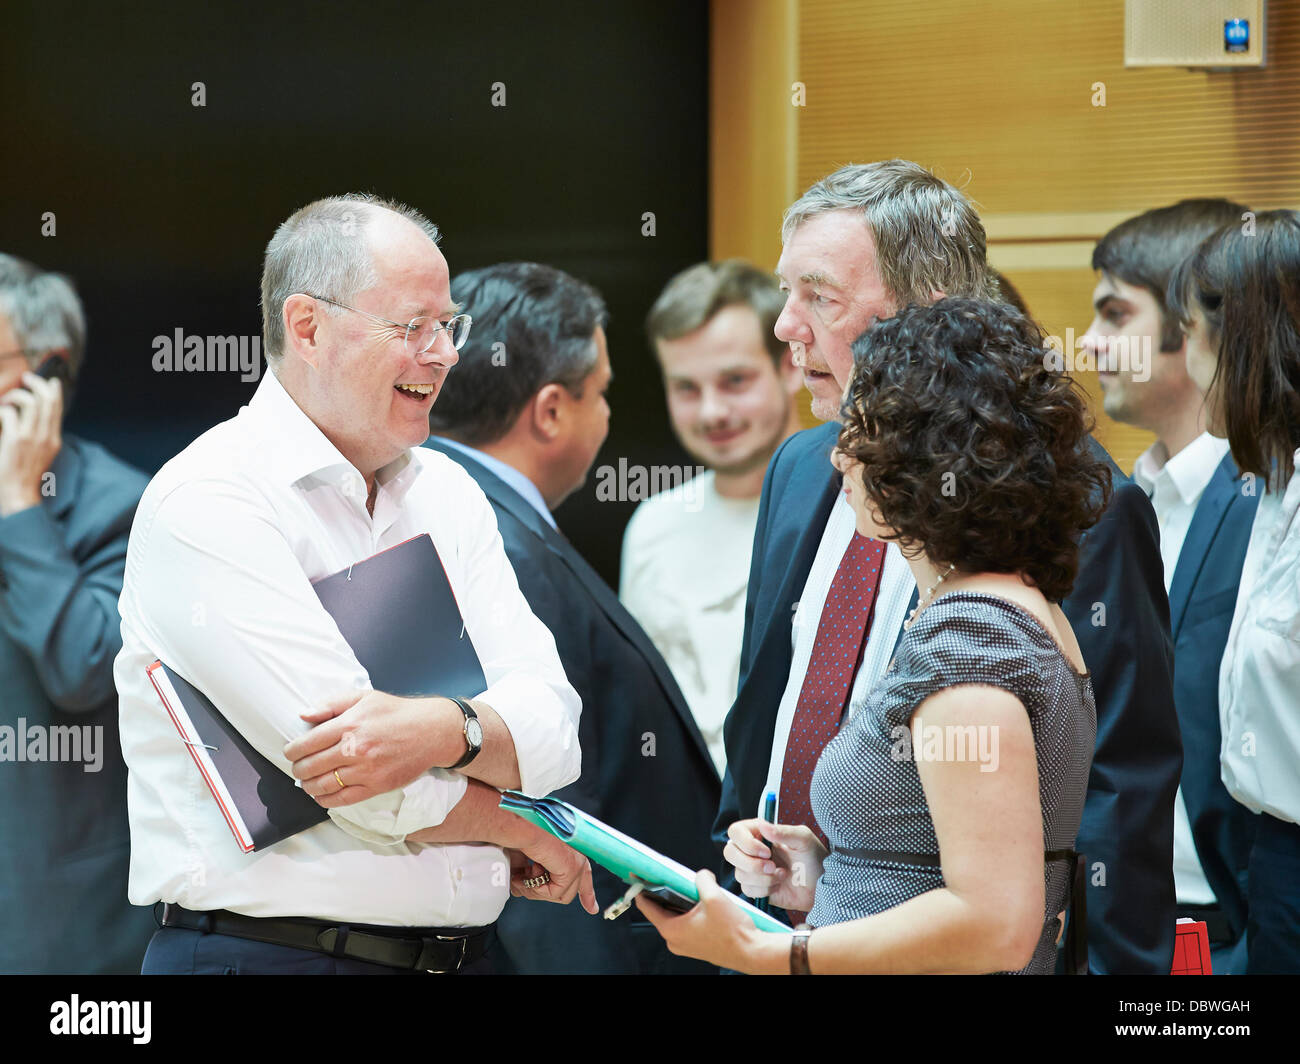 Berlin, German. 5th Aug, 2013. Peer Steinbrueck (SPD), SPD chancellor candidate, arrives at the Meeting of the SPD - Stock Image